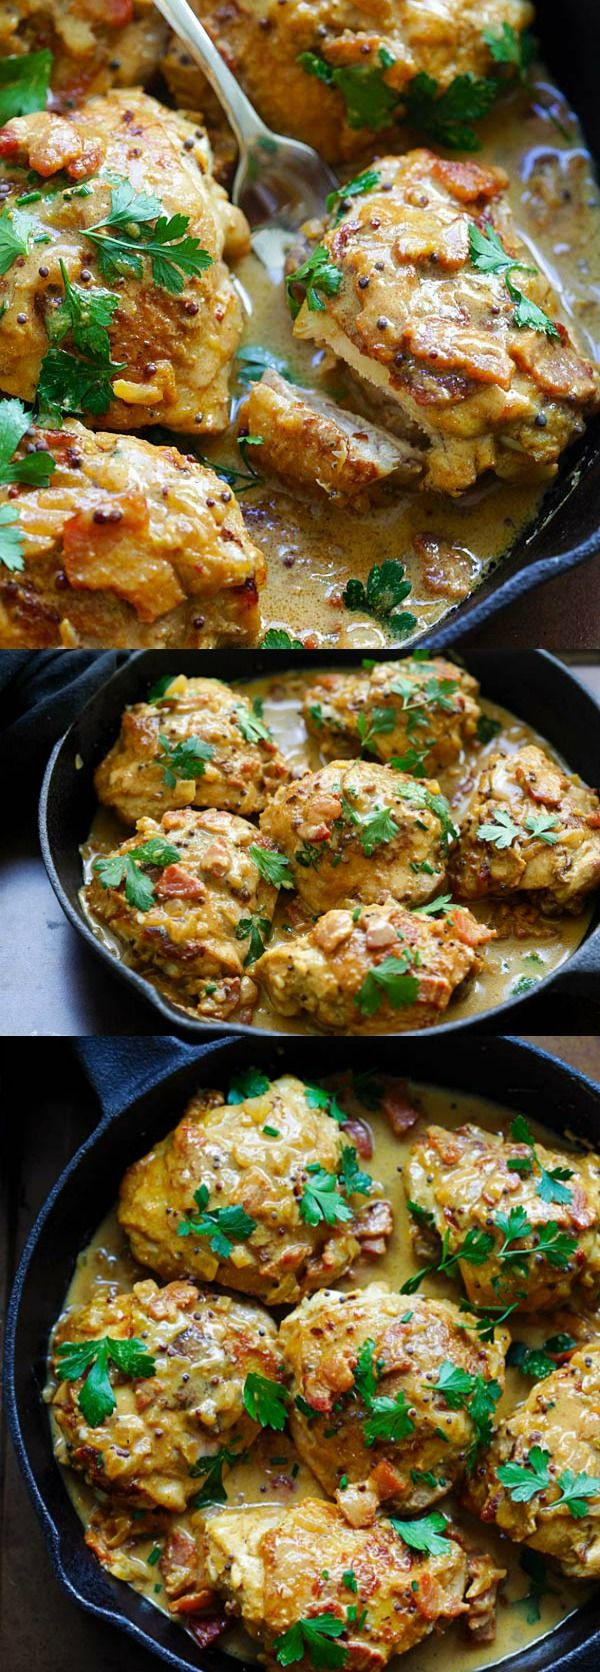 Mustard Chicken – the best mustard chicken recipe by . Rich and crazy delicious mustard sauce with bacon and chicken thighs | rasamalaysia.com #Chicken #Mustard #Bacon